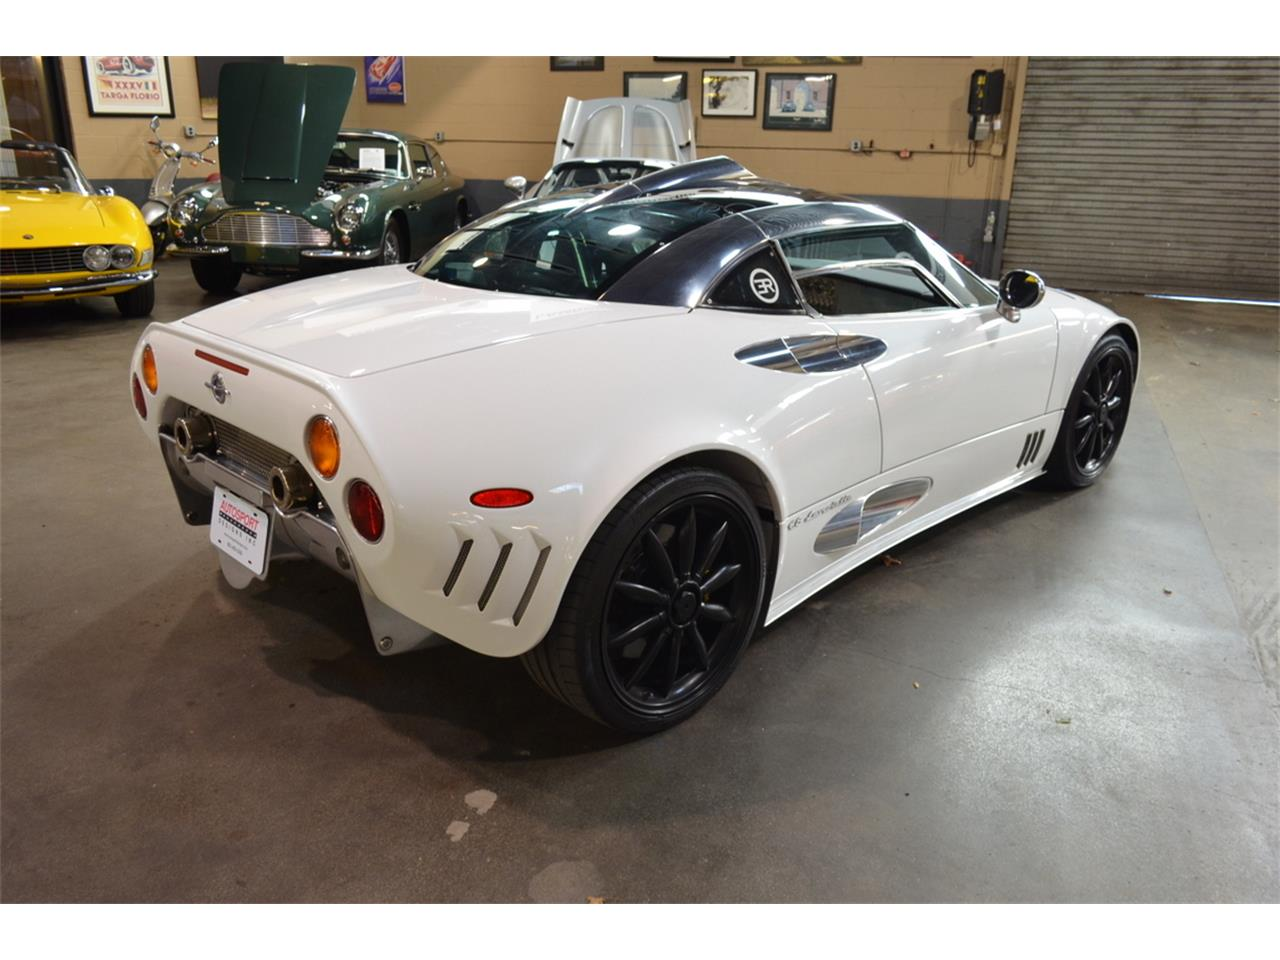 2010 Spyker C8 for sale in Huntington Station, NY – photo 8